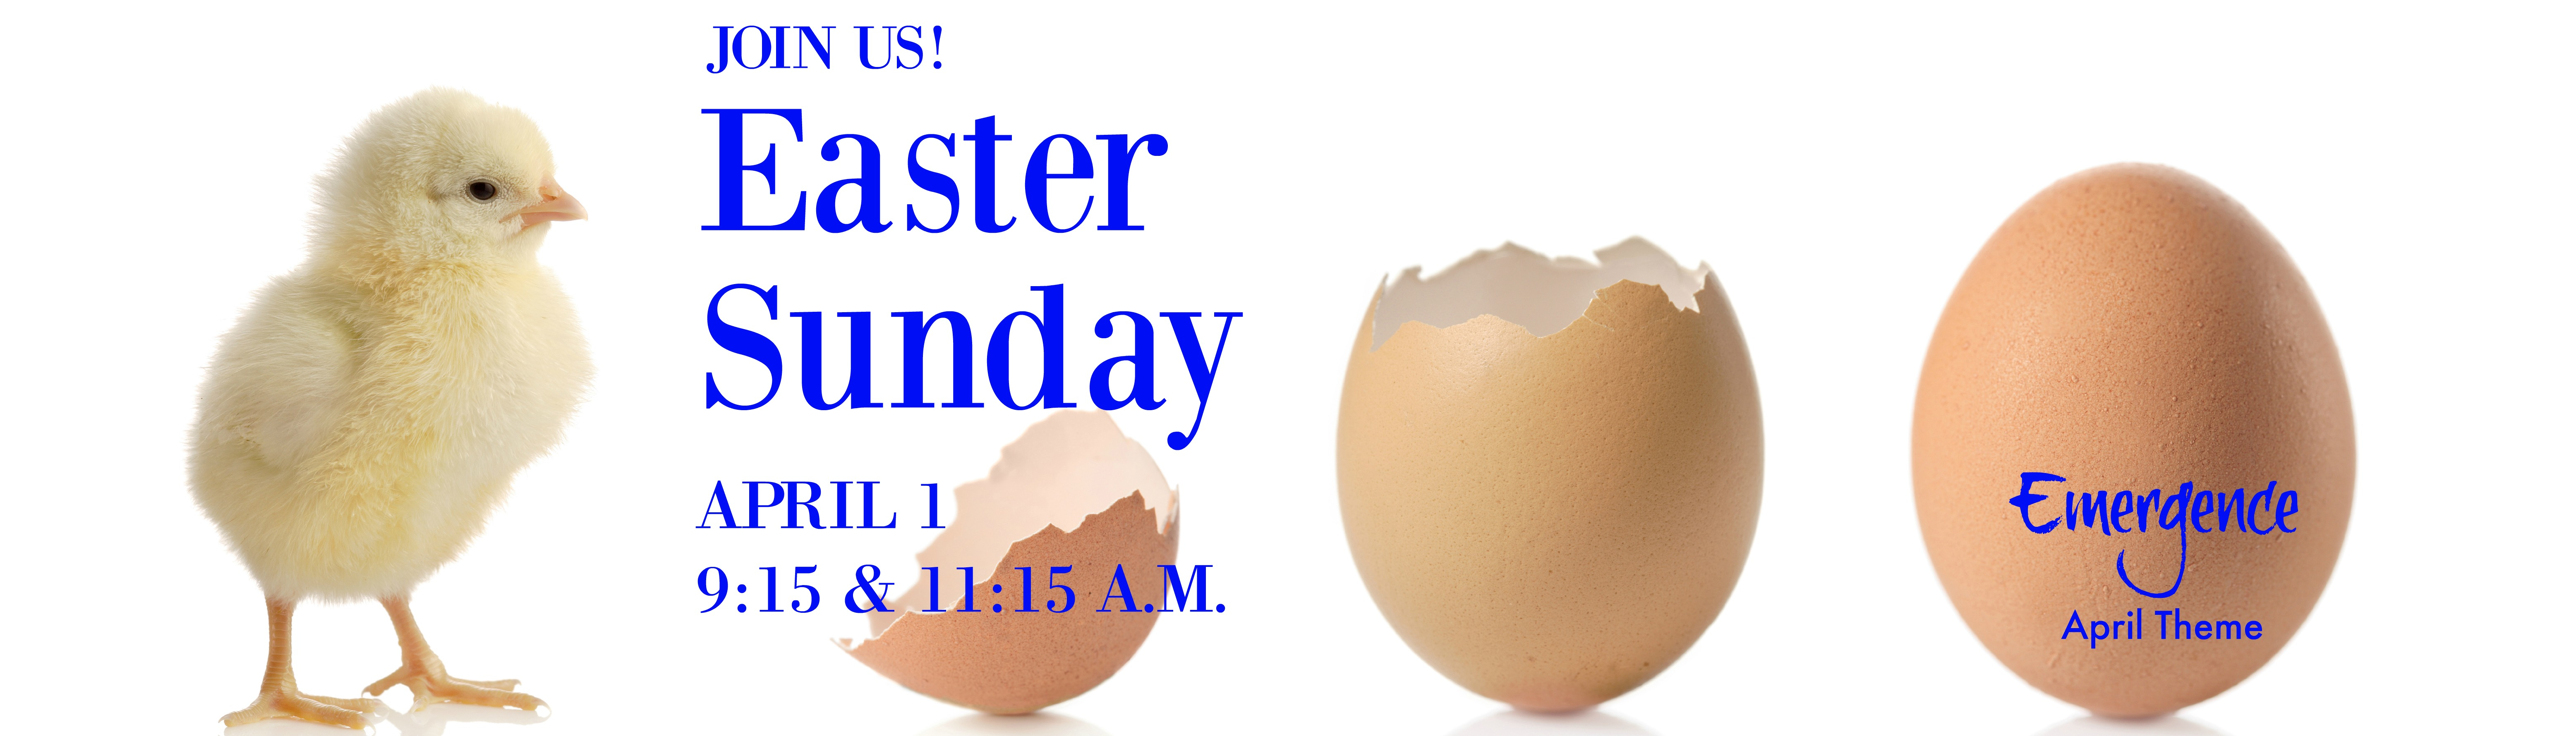 Easter-website-banner-1